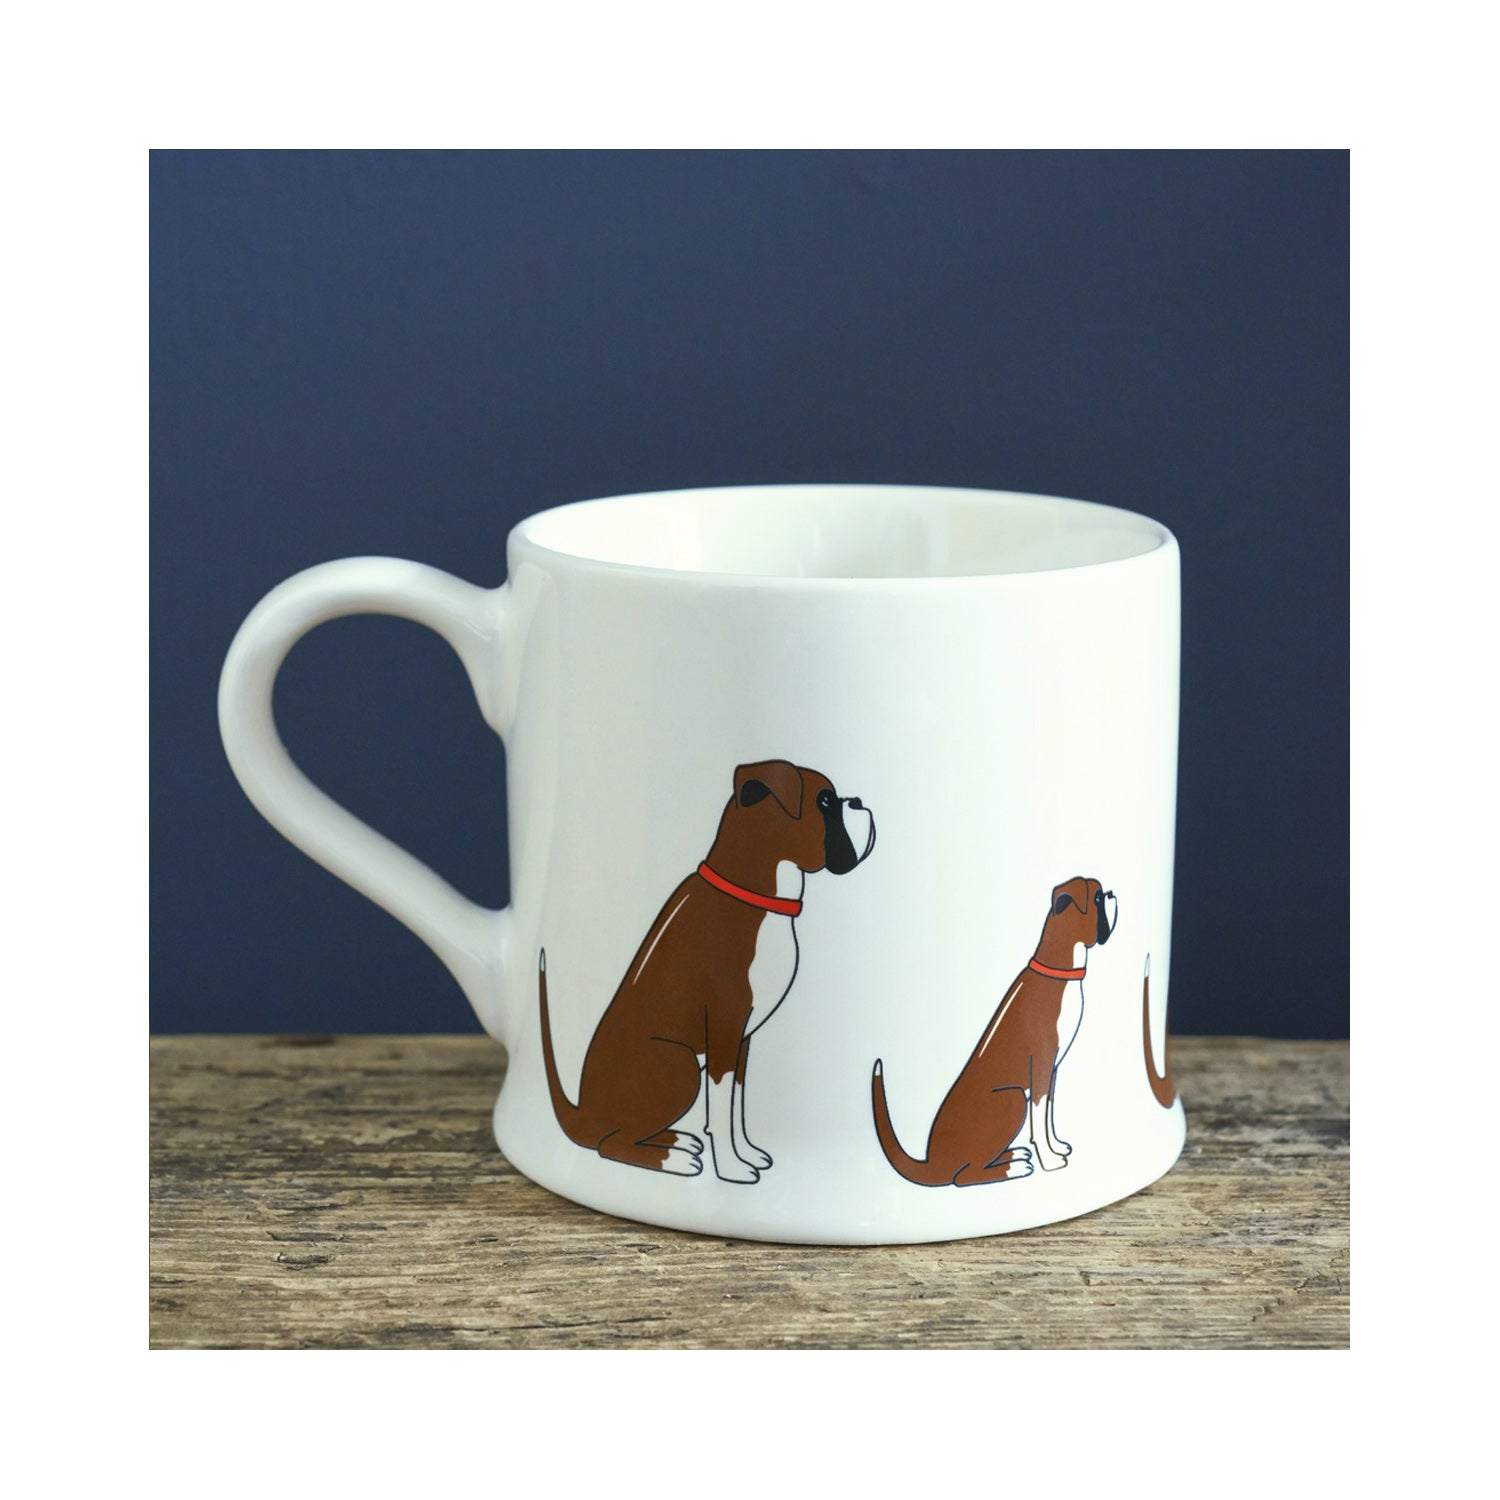 Dog Lover Gifts available at Dog Krazy Gifts - Archie The Boxer Dog Mug - part of the Sweet William range available from Dog Krazy Gifts